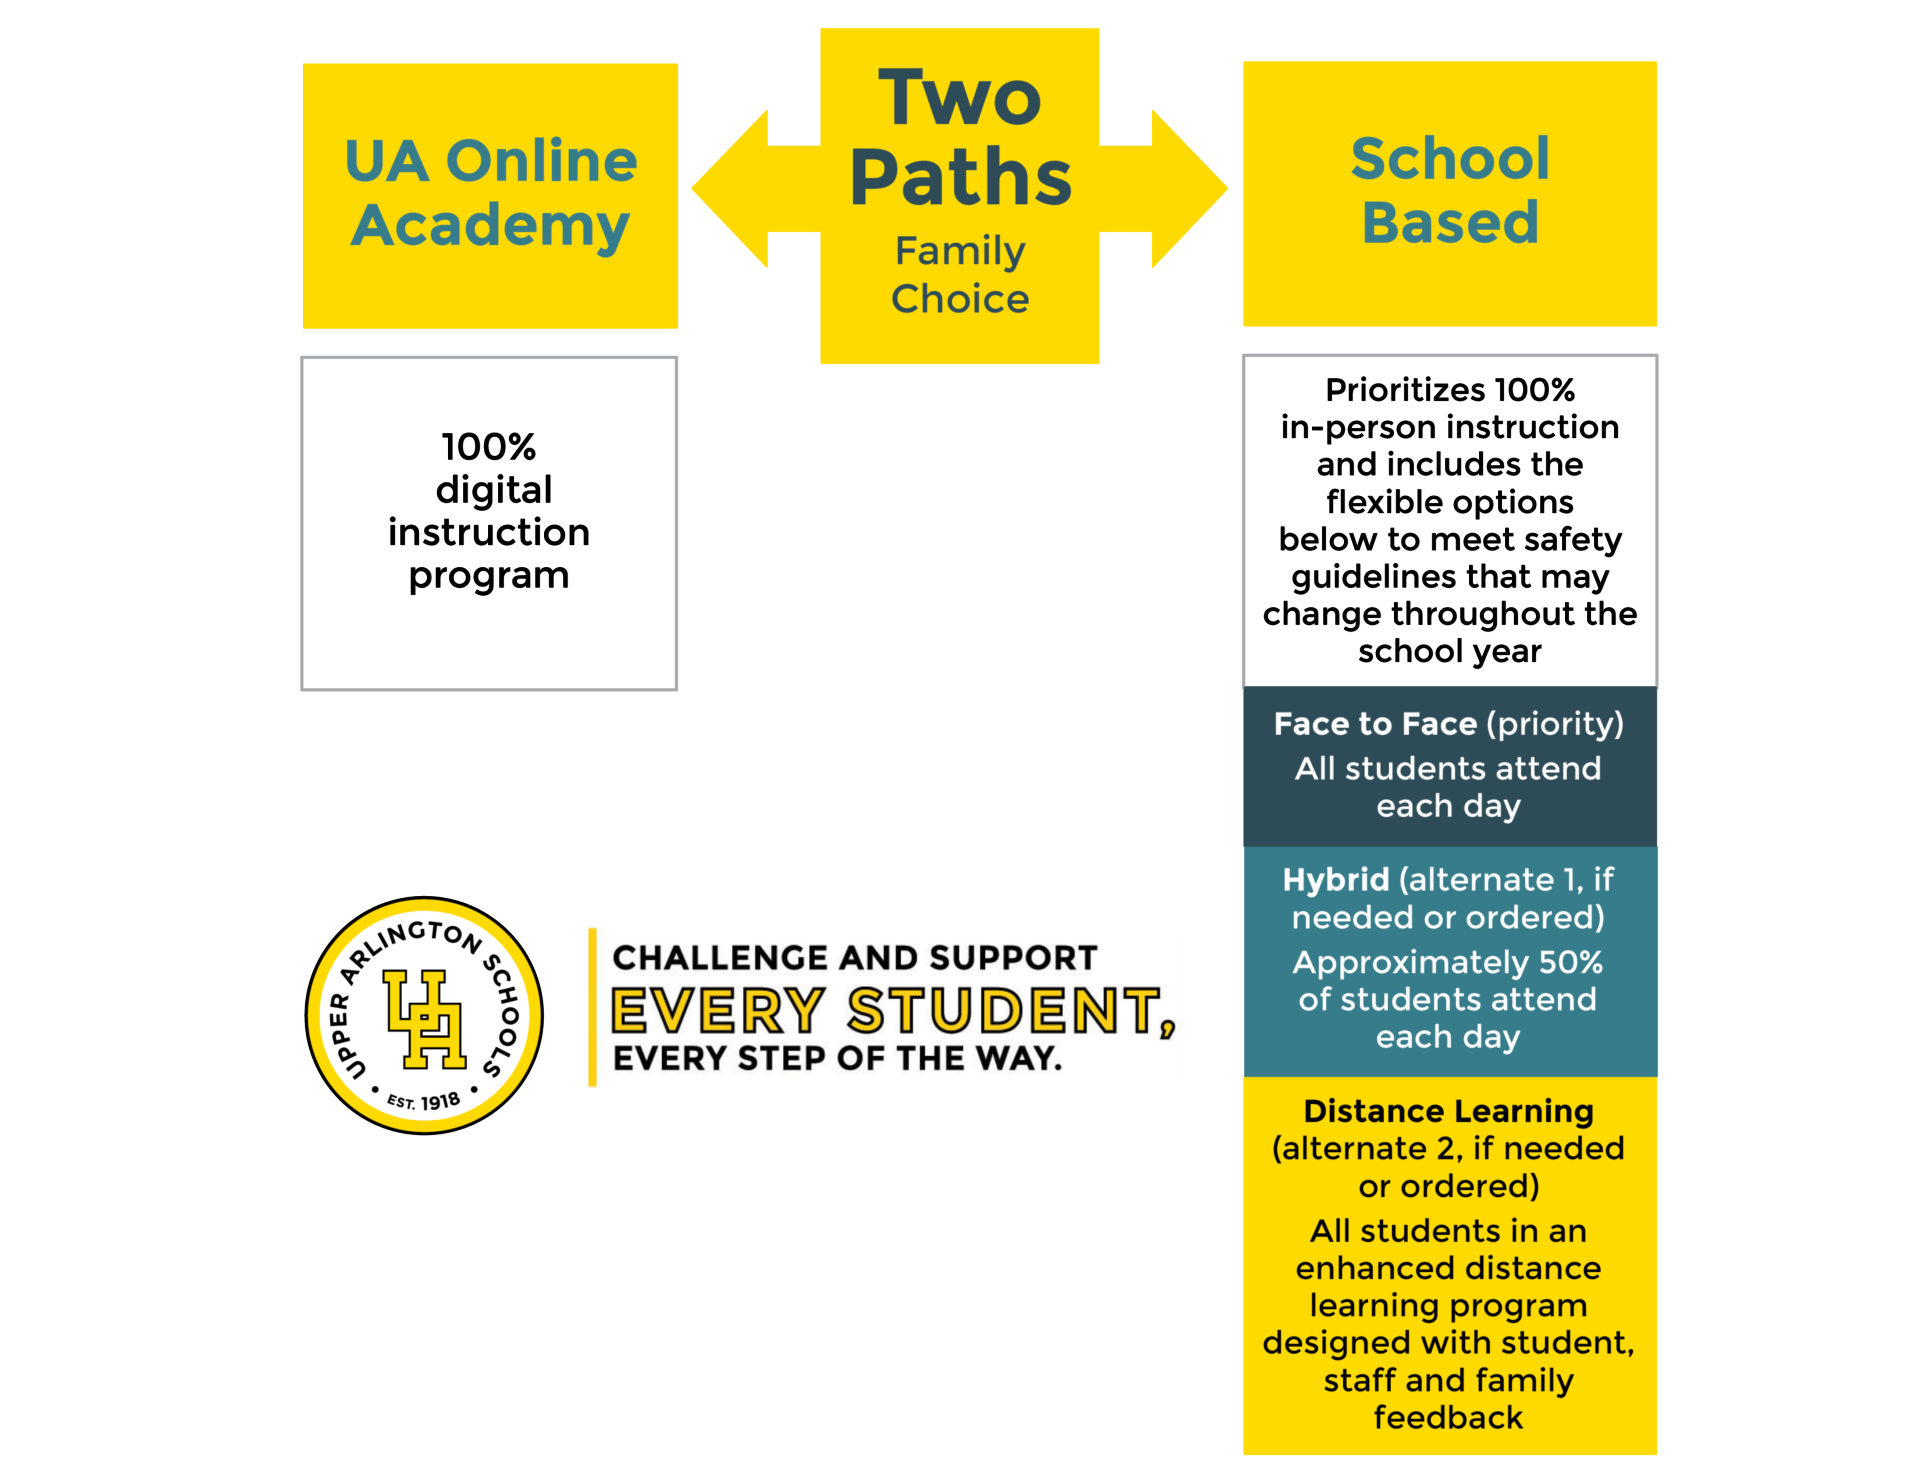 Two paths for 2020-2021 - UA online academy and School-based instruction options